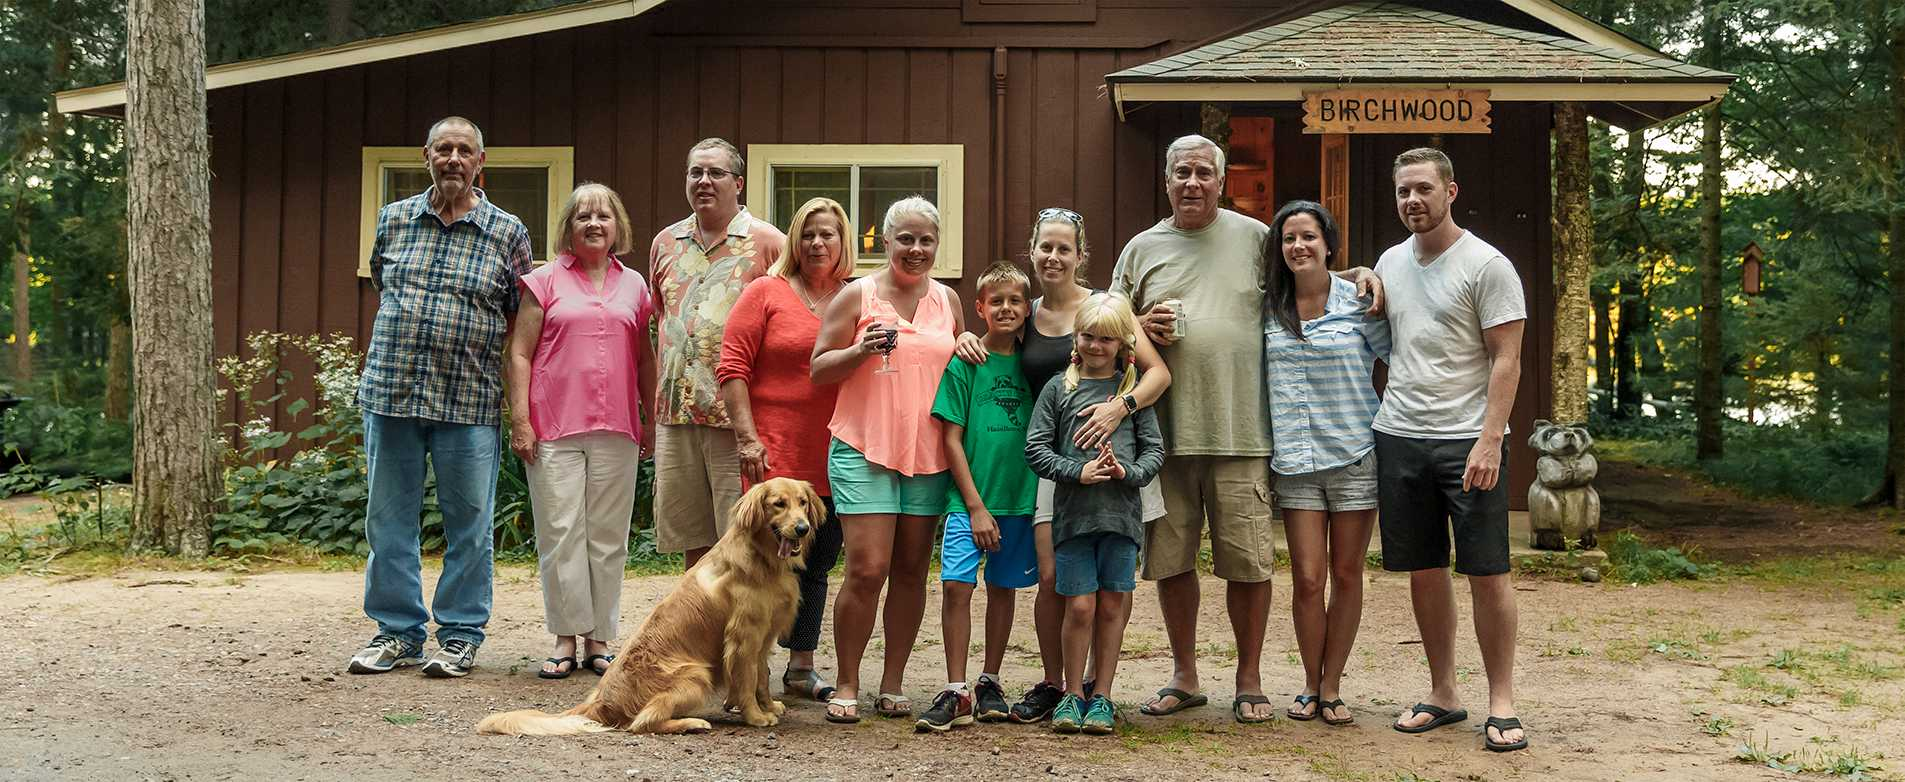 Family Standing in Front of Birchwood Cabin at Black's Cliff Resort